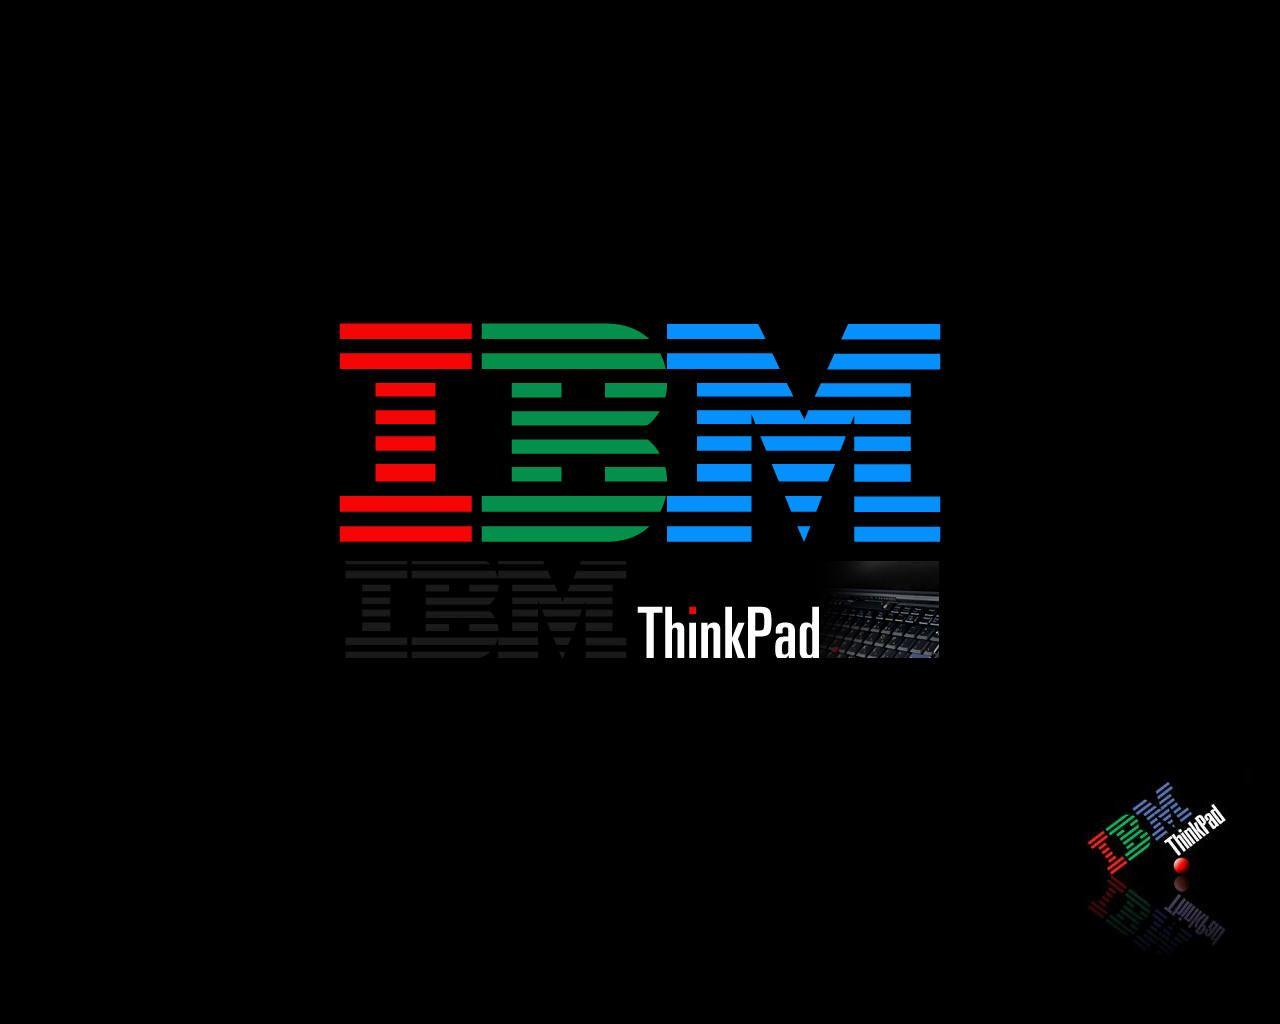 Ibm wallpapers wallpaper cave ibm logo images publicscrutiny Image collections